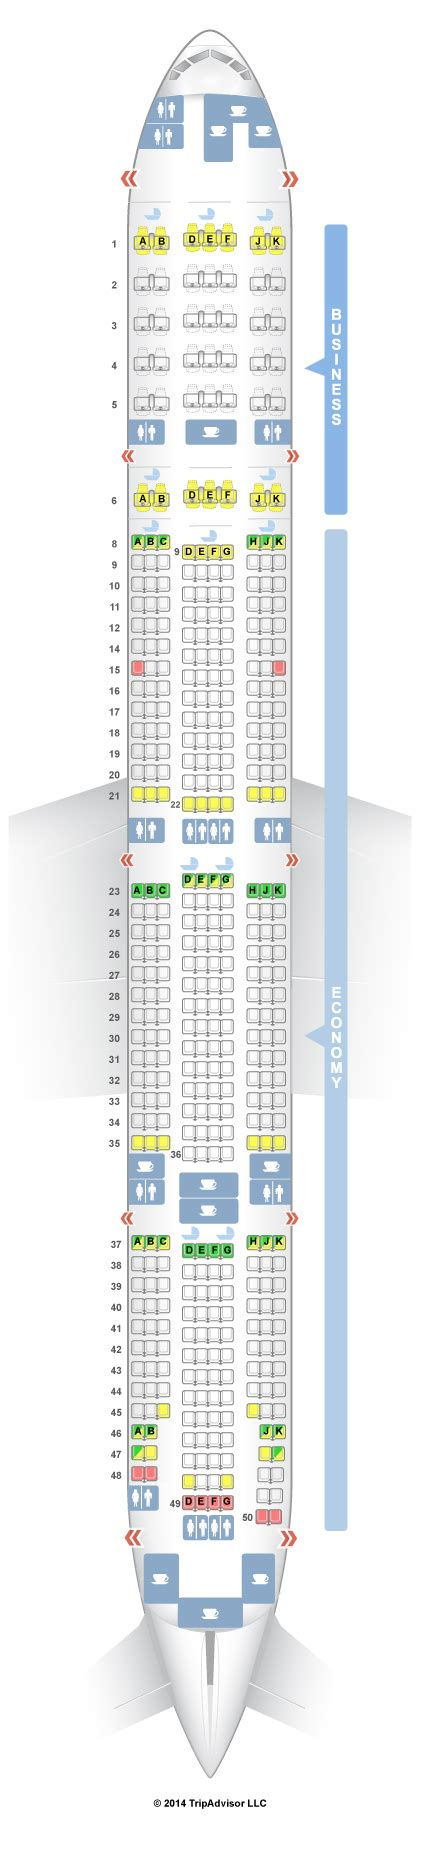 plan si鑒es boeing 777 300er air seatguru seat map emirates boeing 777 300er 77w two class